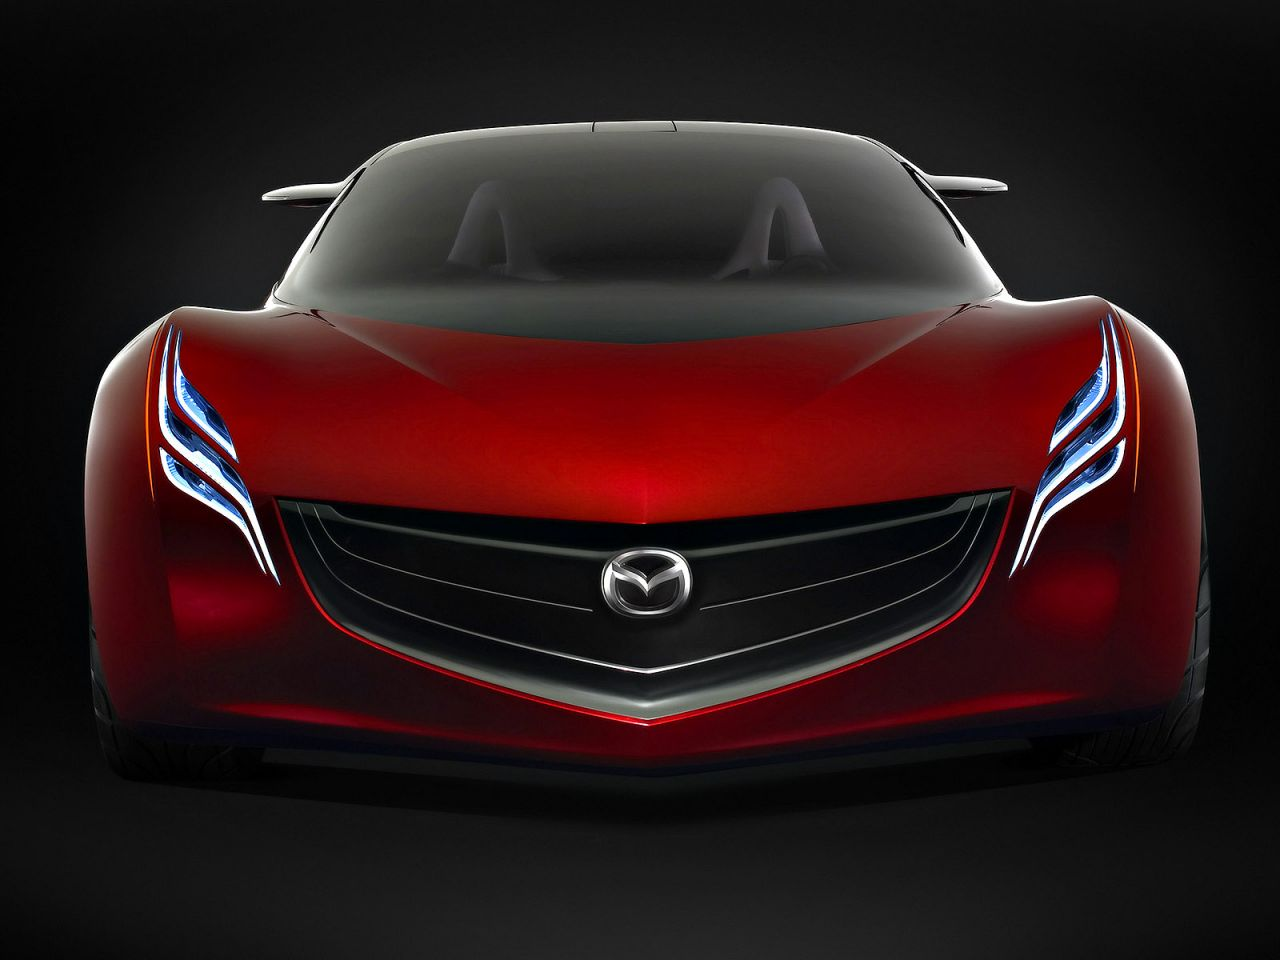 Mazda Ryuga Concept Full Front View Wallpaper 1280x960